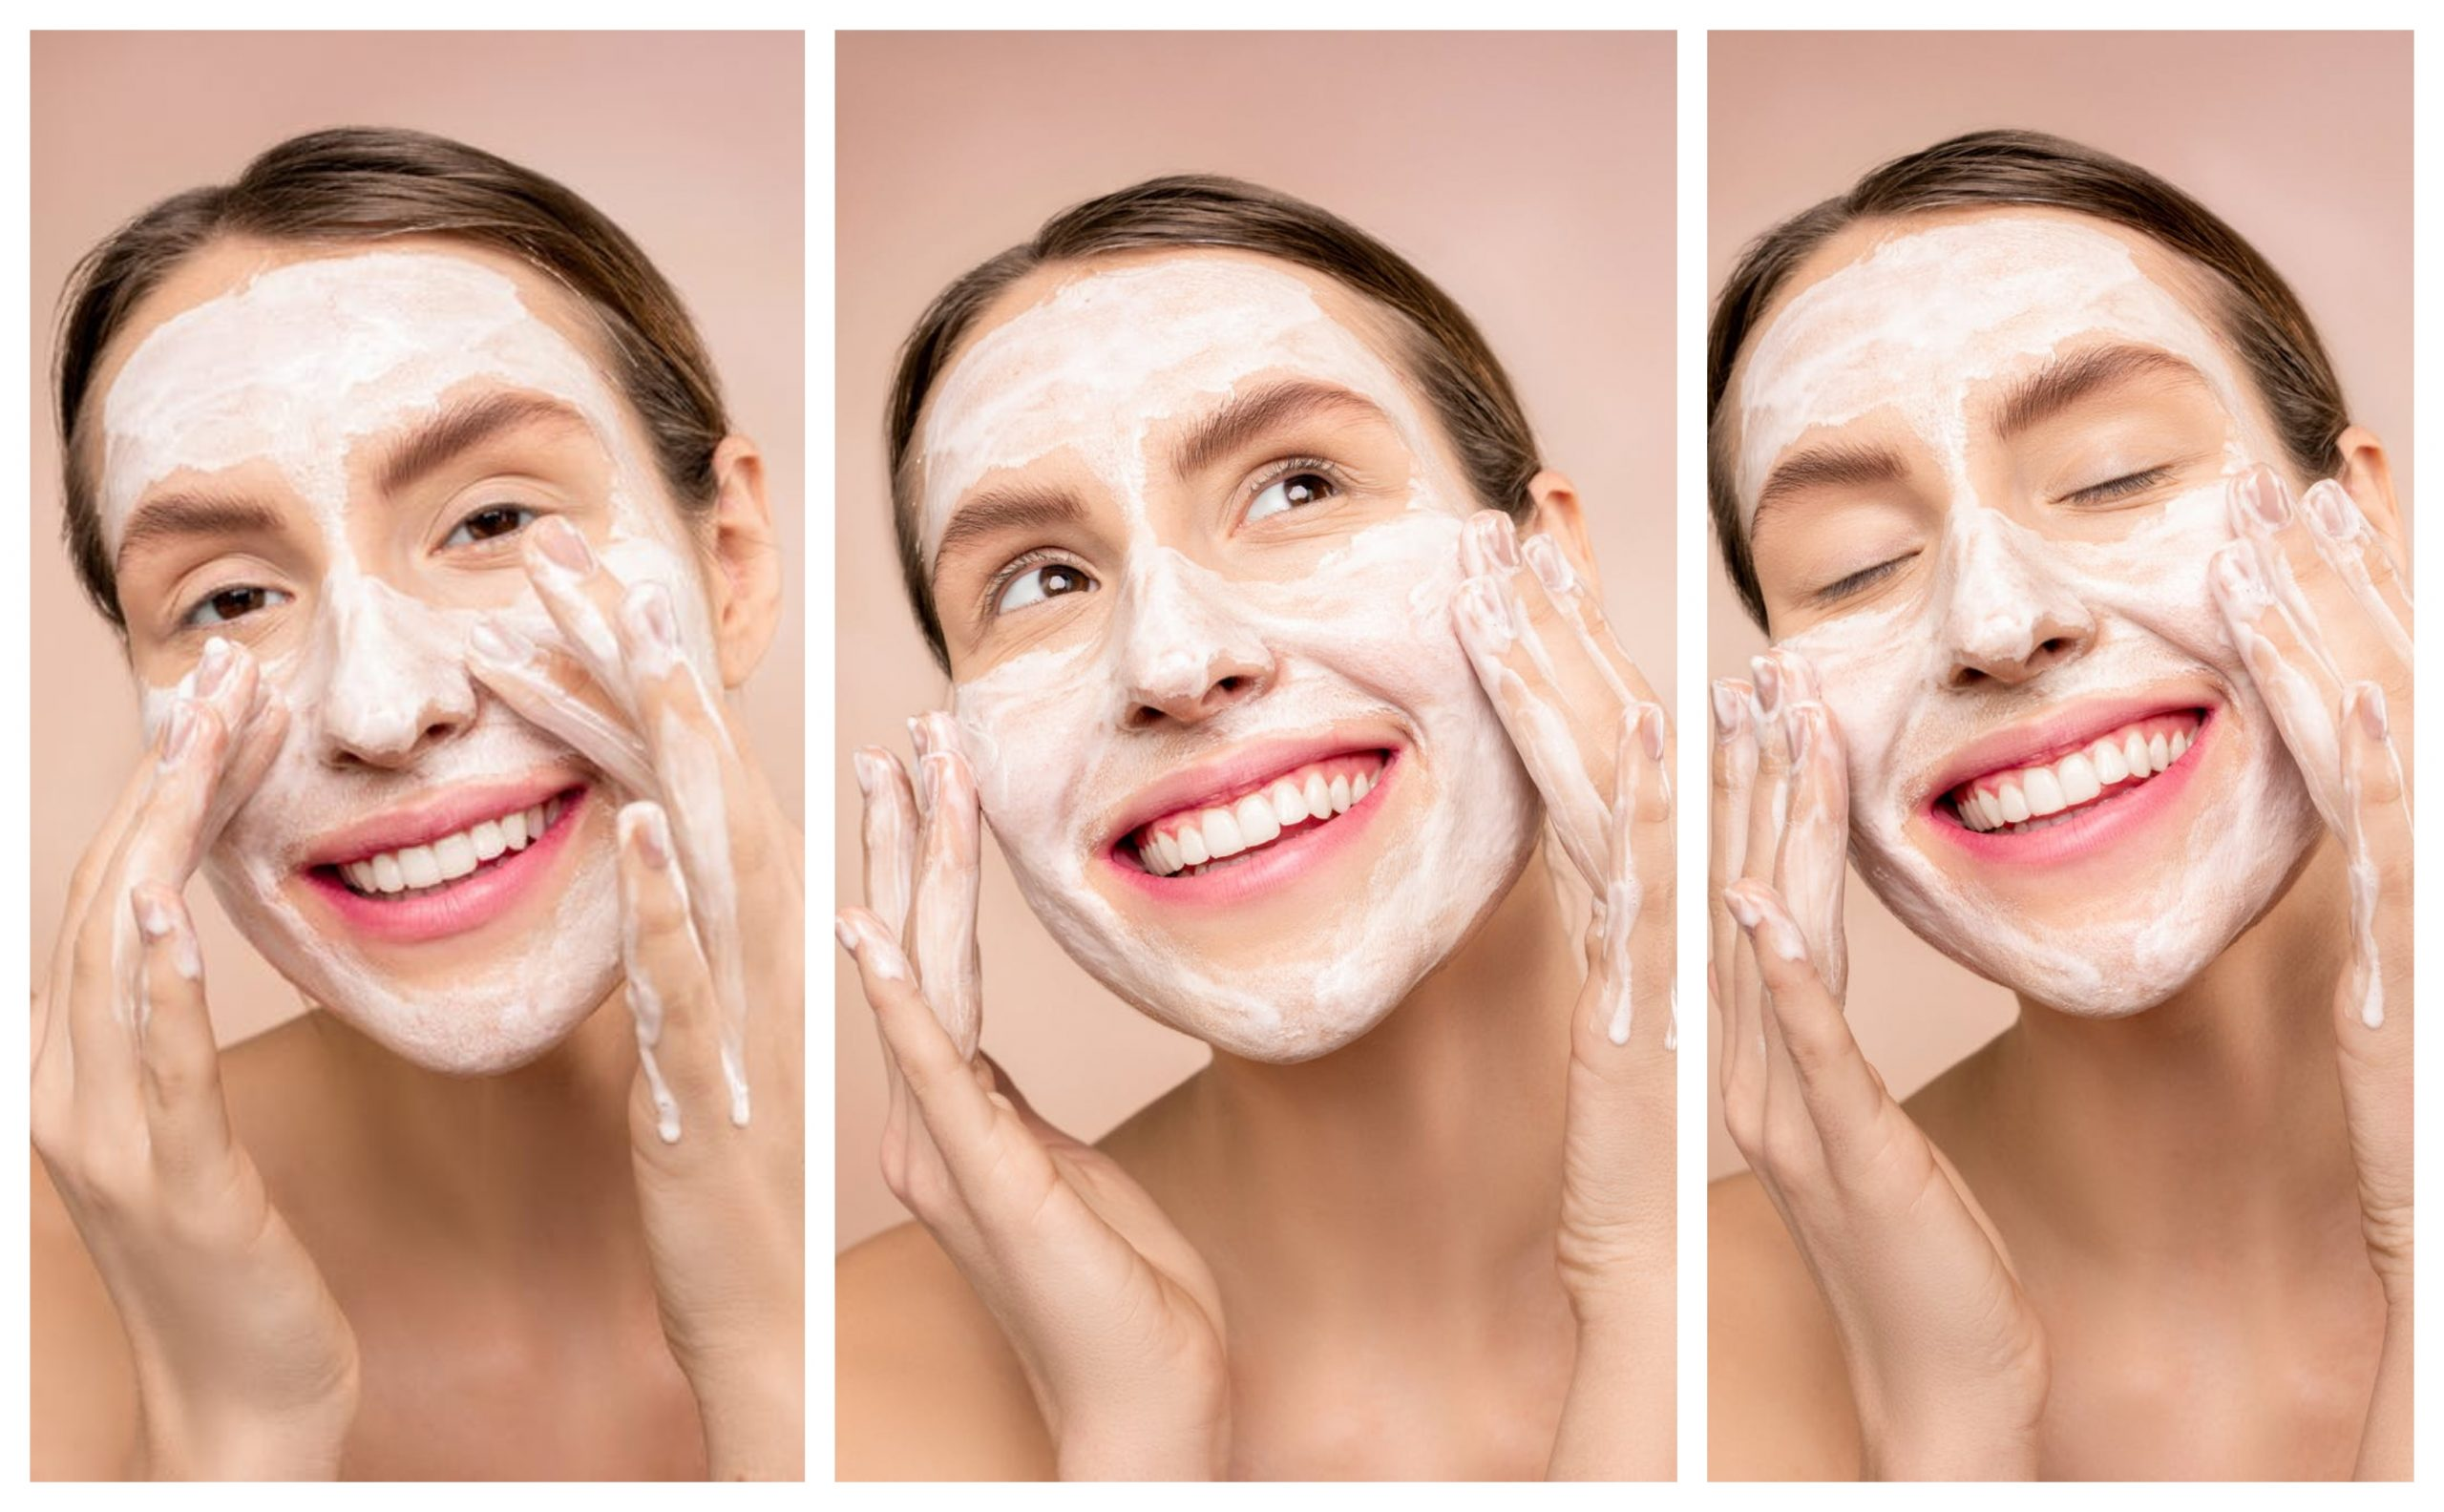 Best Face Wash for Dry Skin and Ways to Hydrate and Moisturize